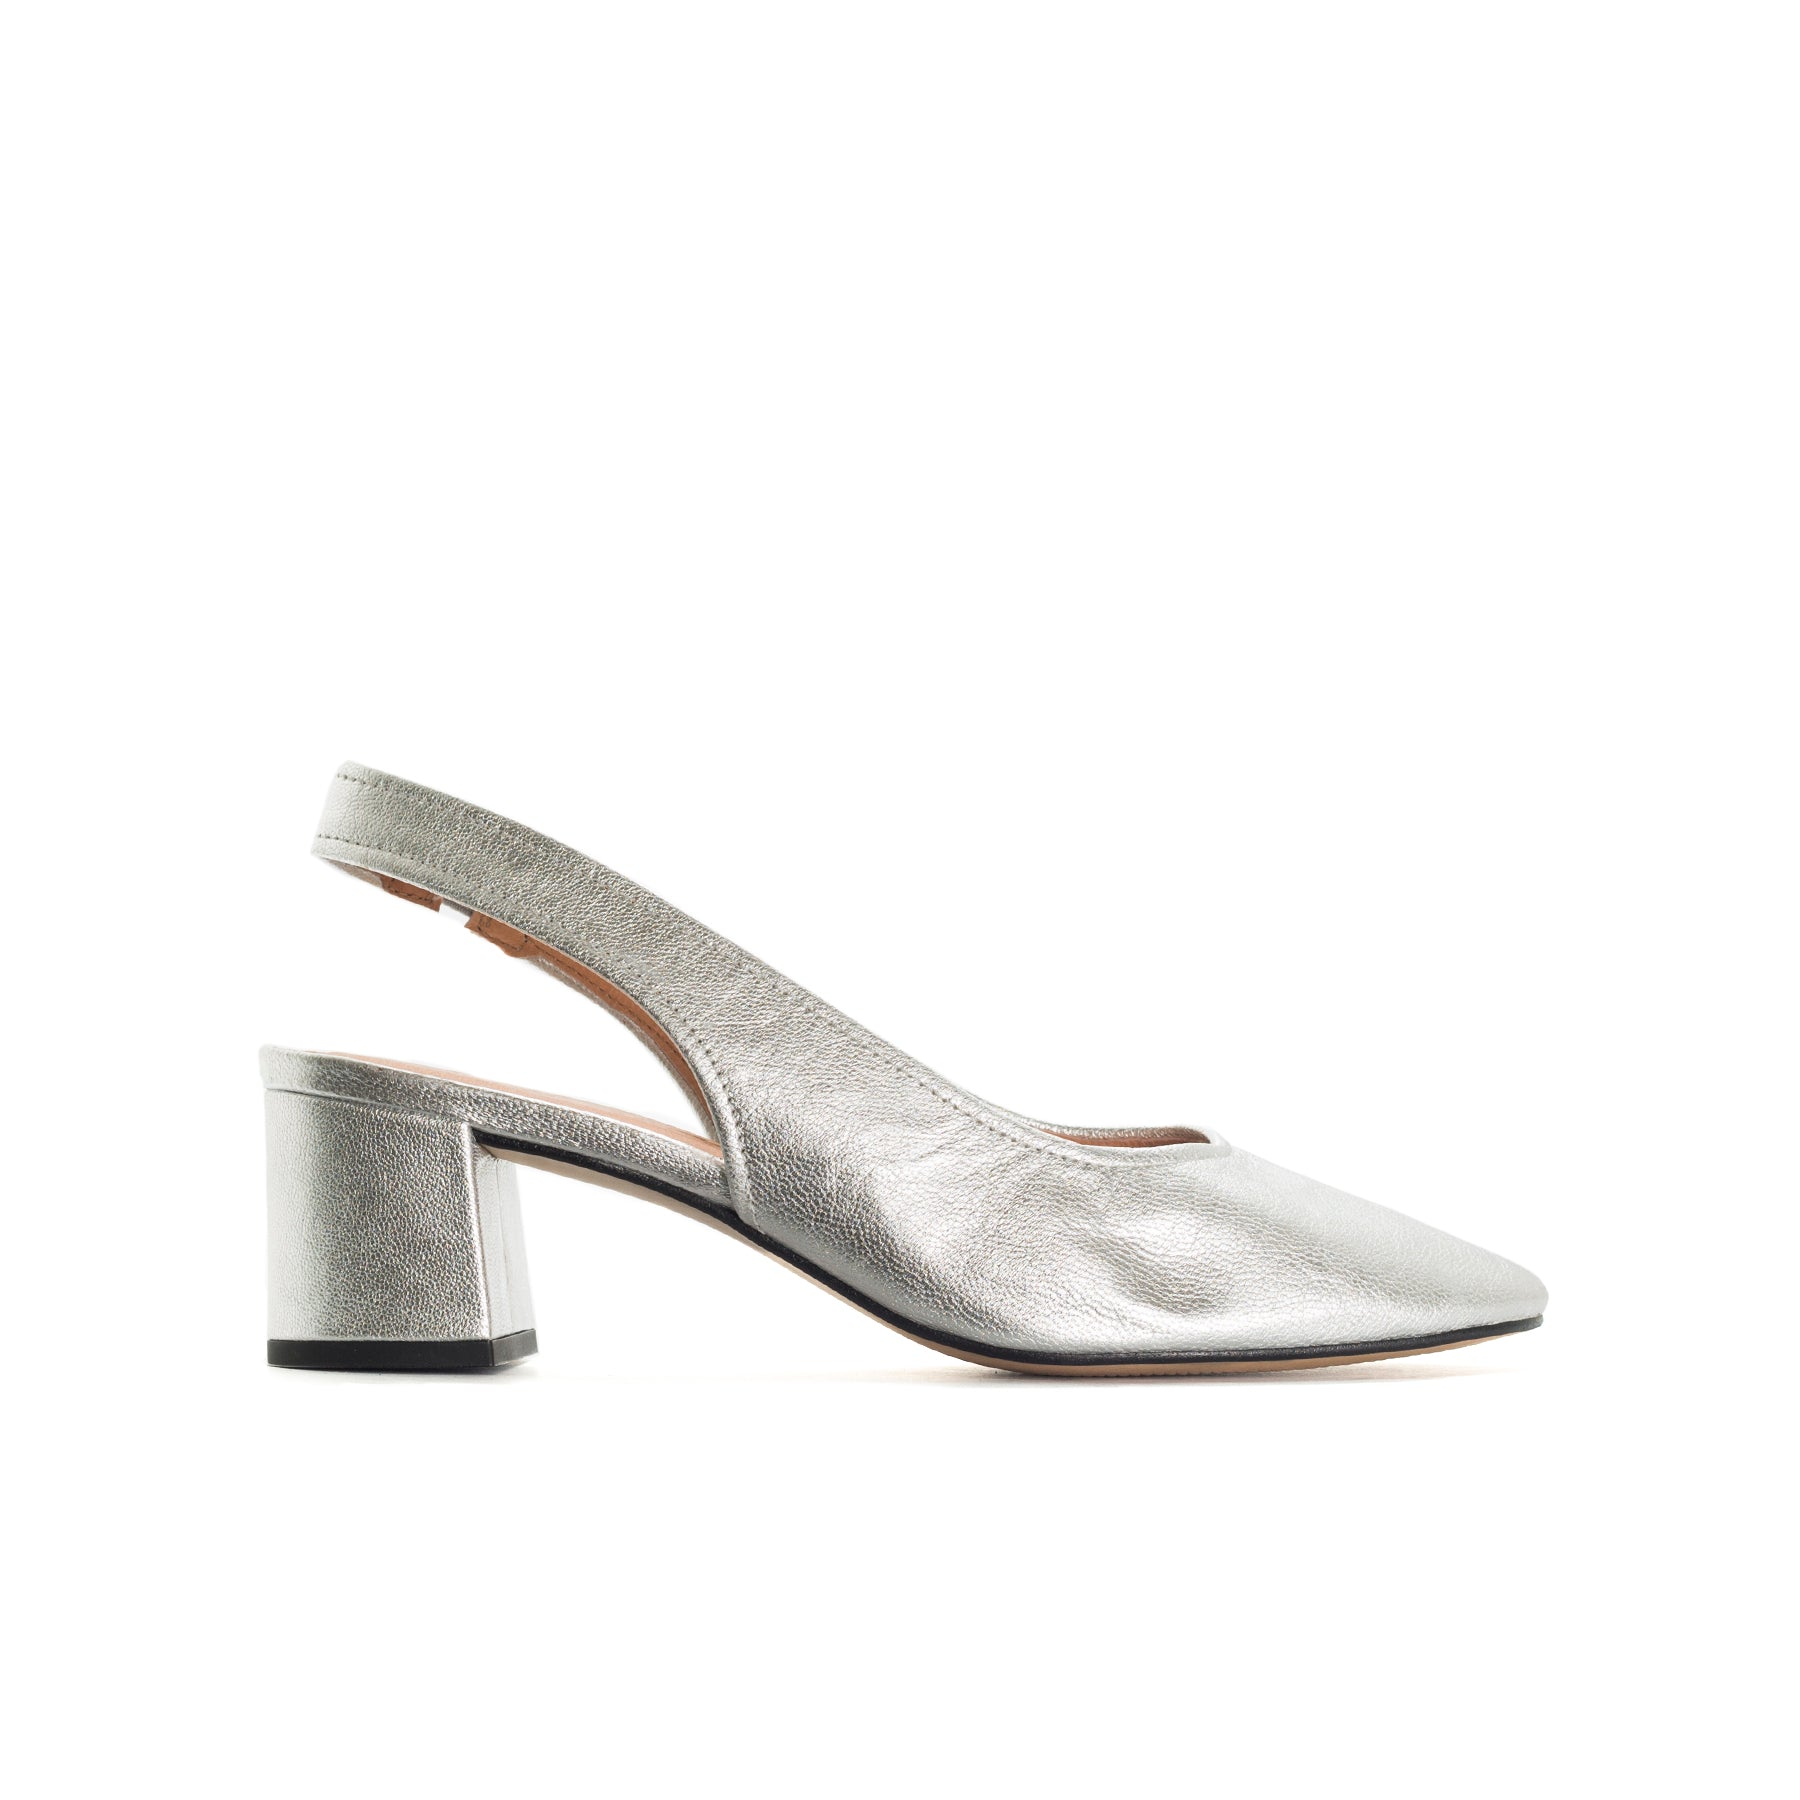 Juros Silver Metallic Leather Pumps